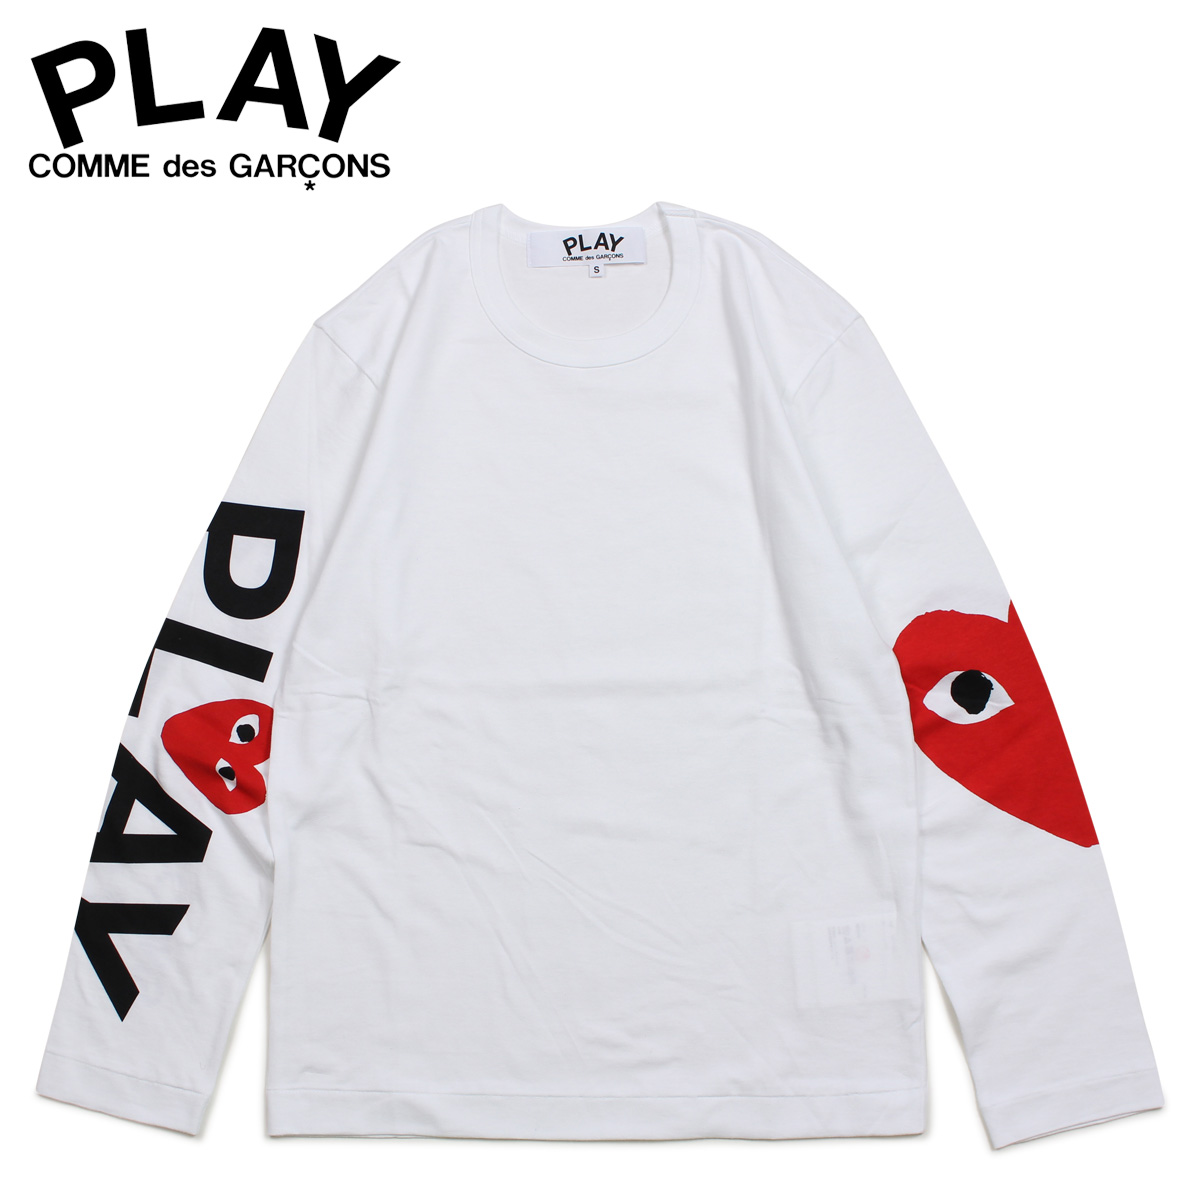 PLAY COMME des GARCONS コムデギャルソン Tシャツ メンズ 長袖 ロンT RED HEART LONG SLEEVE ホワイト 白 AZ-T258 [4/1 新入荷]